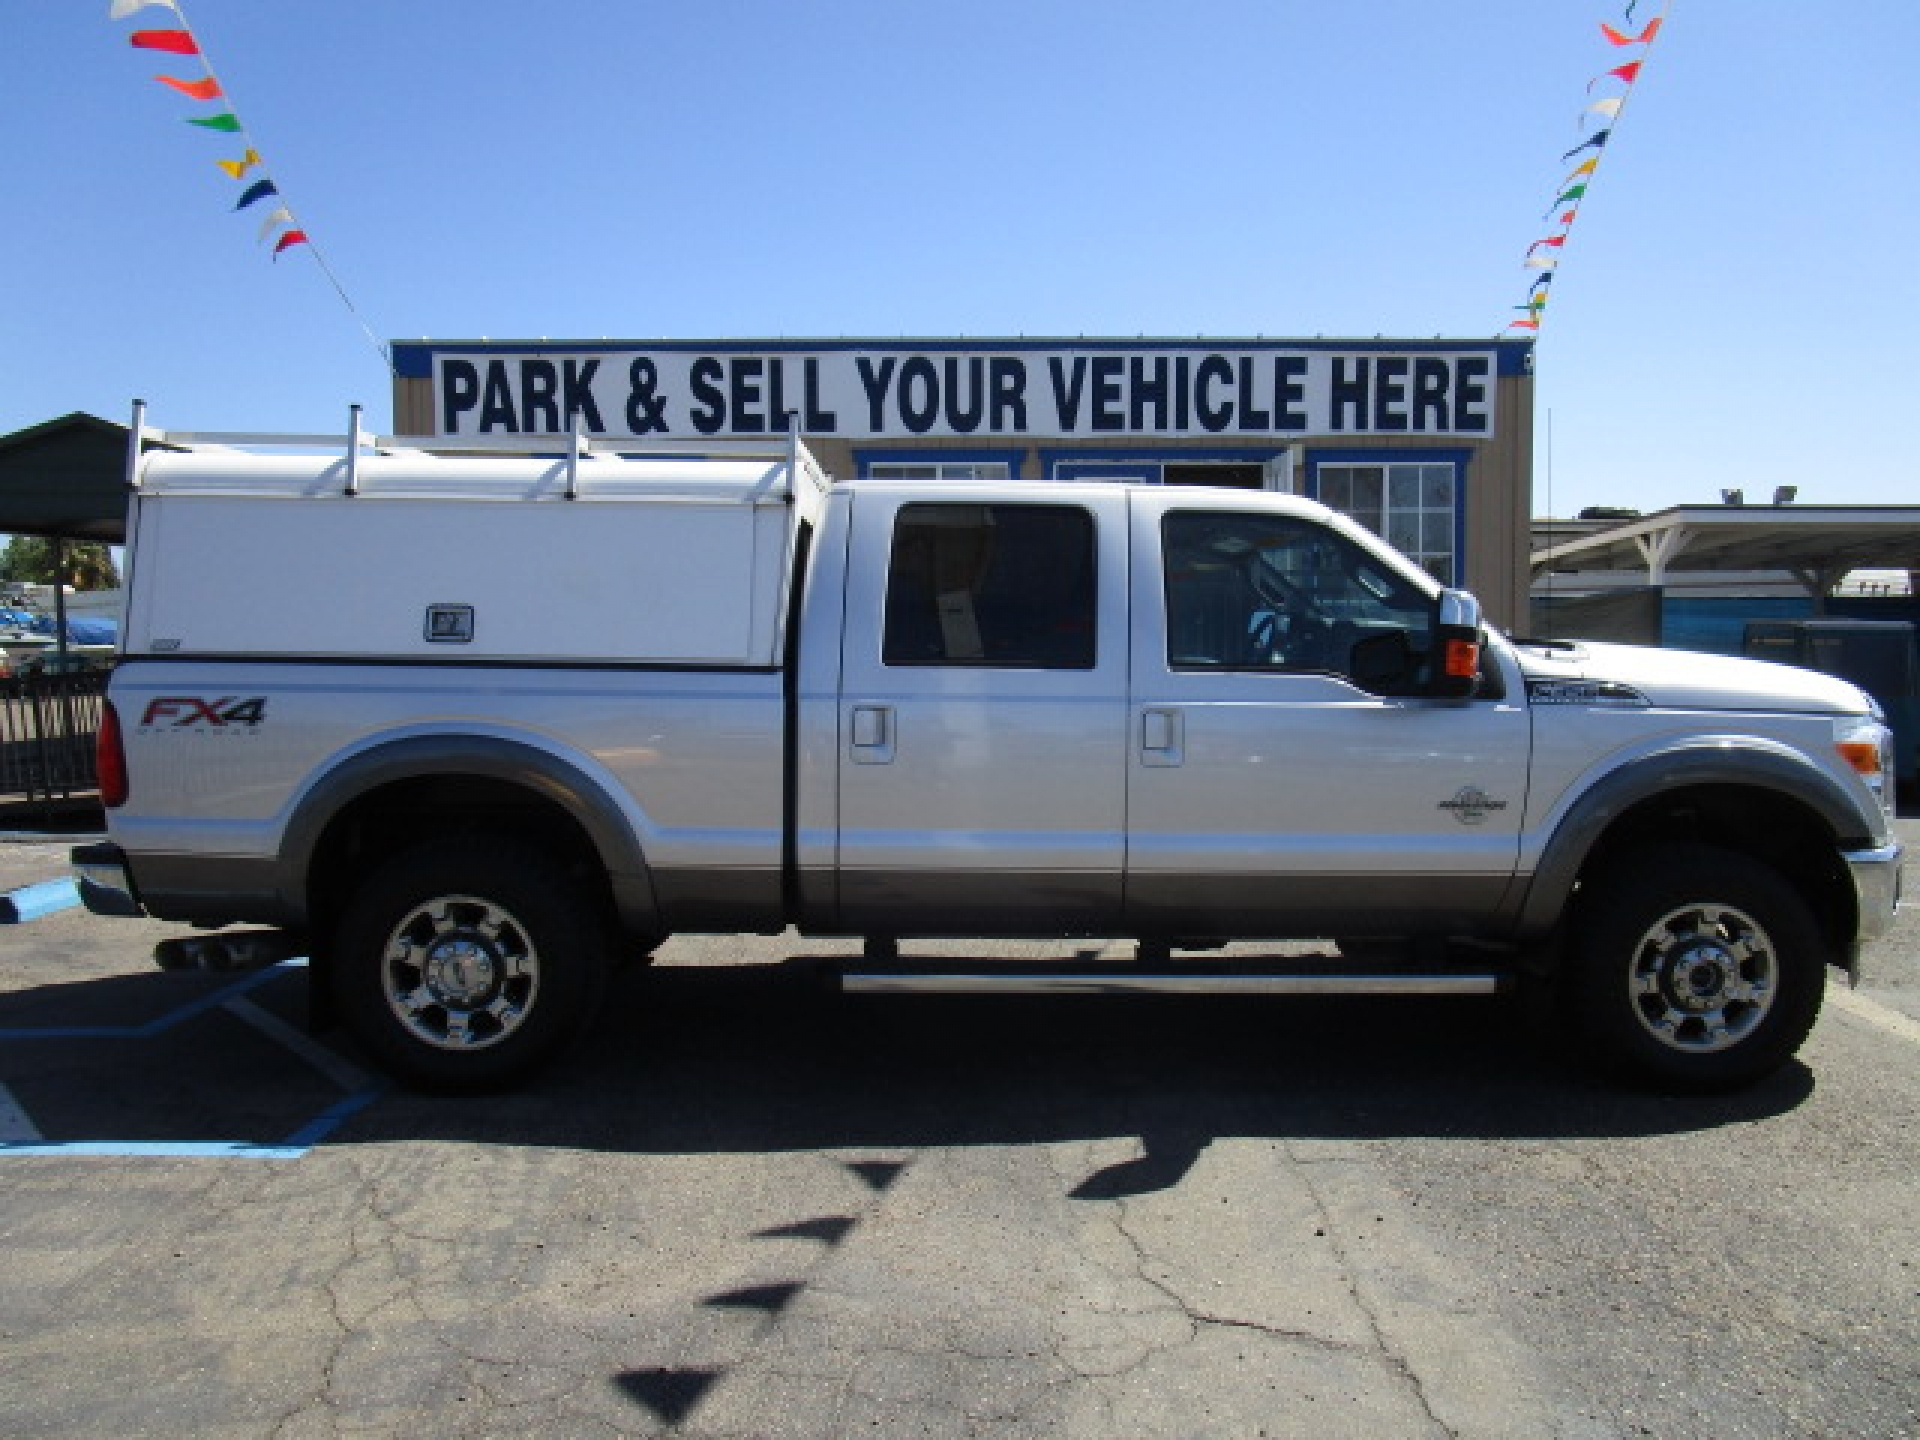 Ford Power Stroke 4x4 F-350 Crew Cab Shortbed Lariat 2014